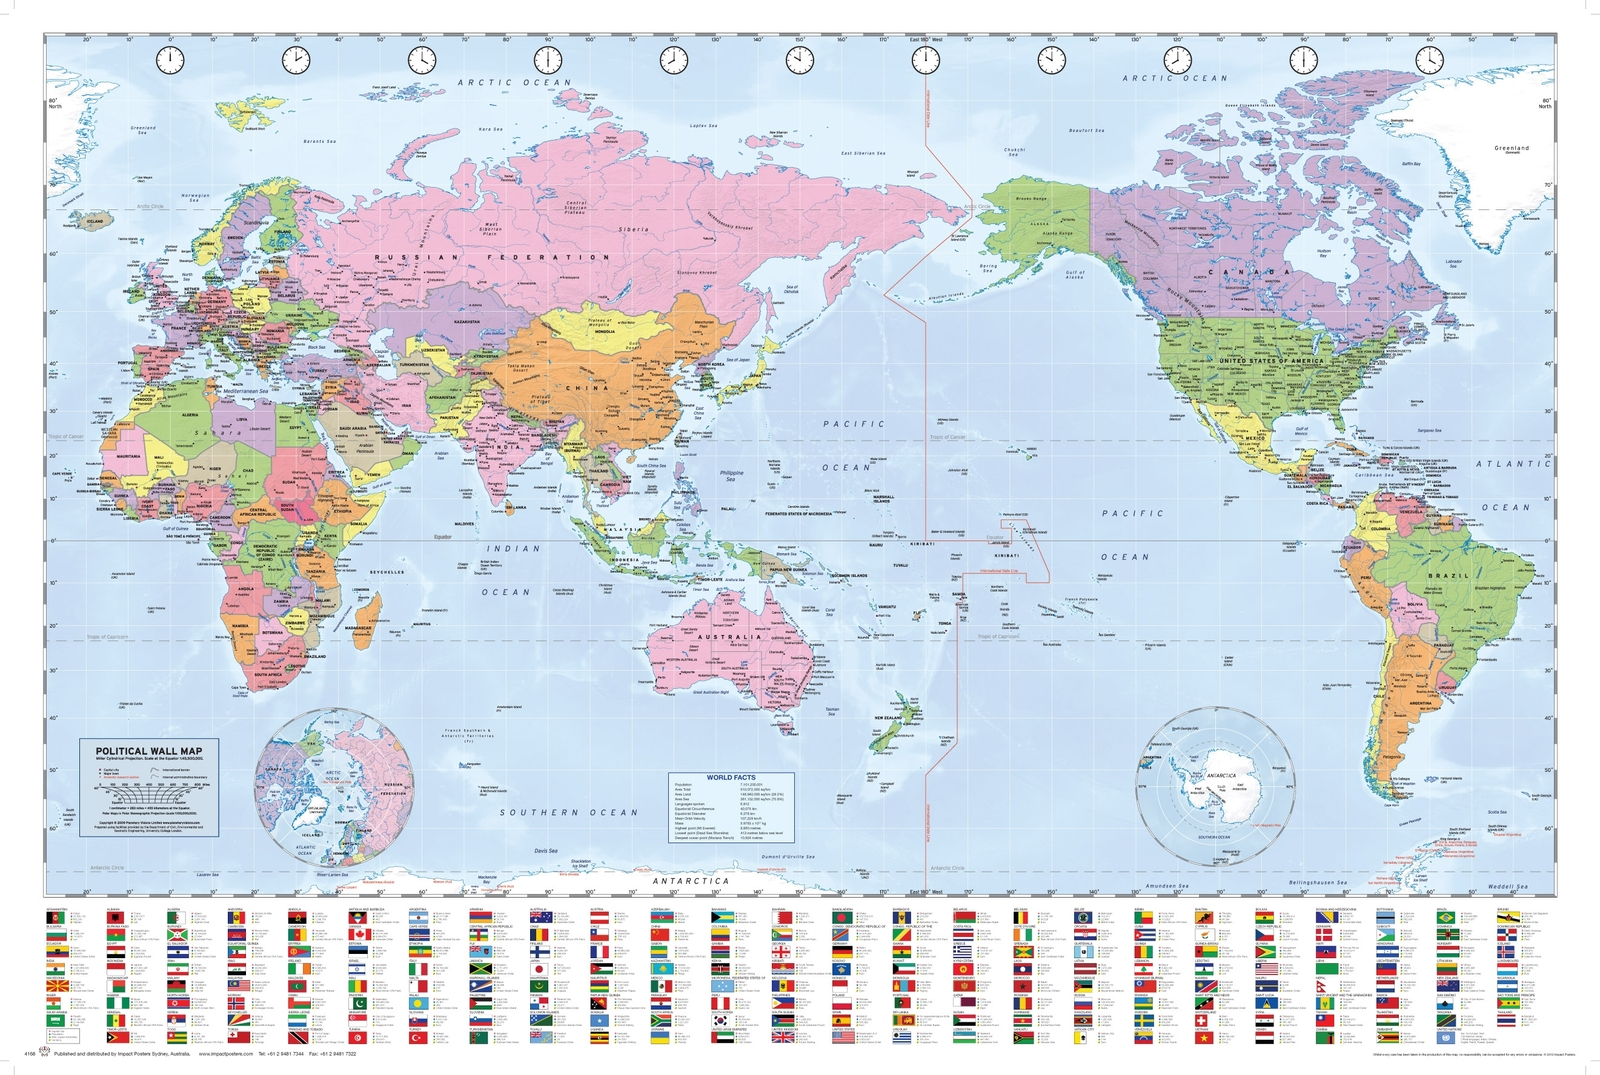 World Map Pacific Centralised Wall Poster (41) image